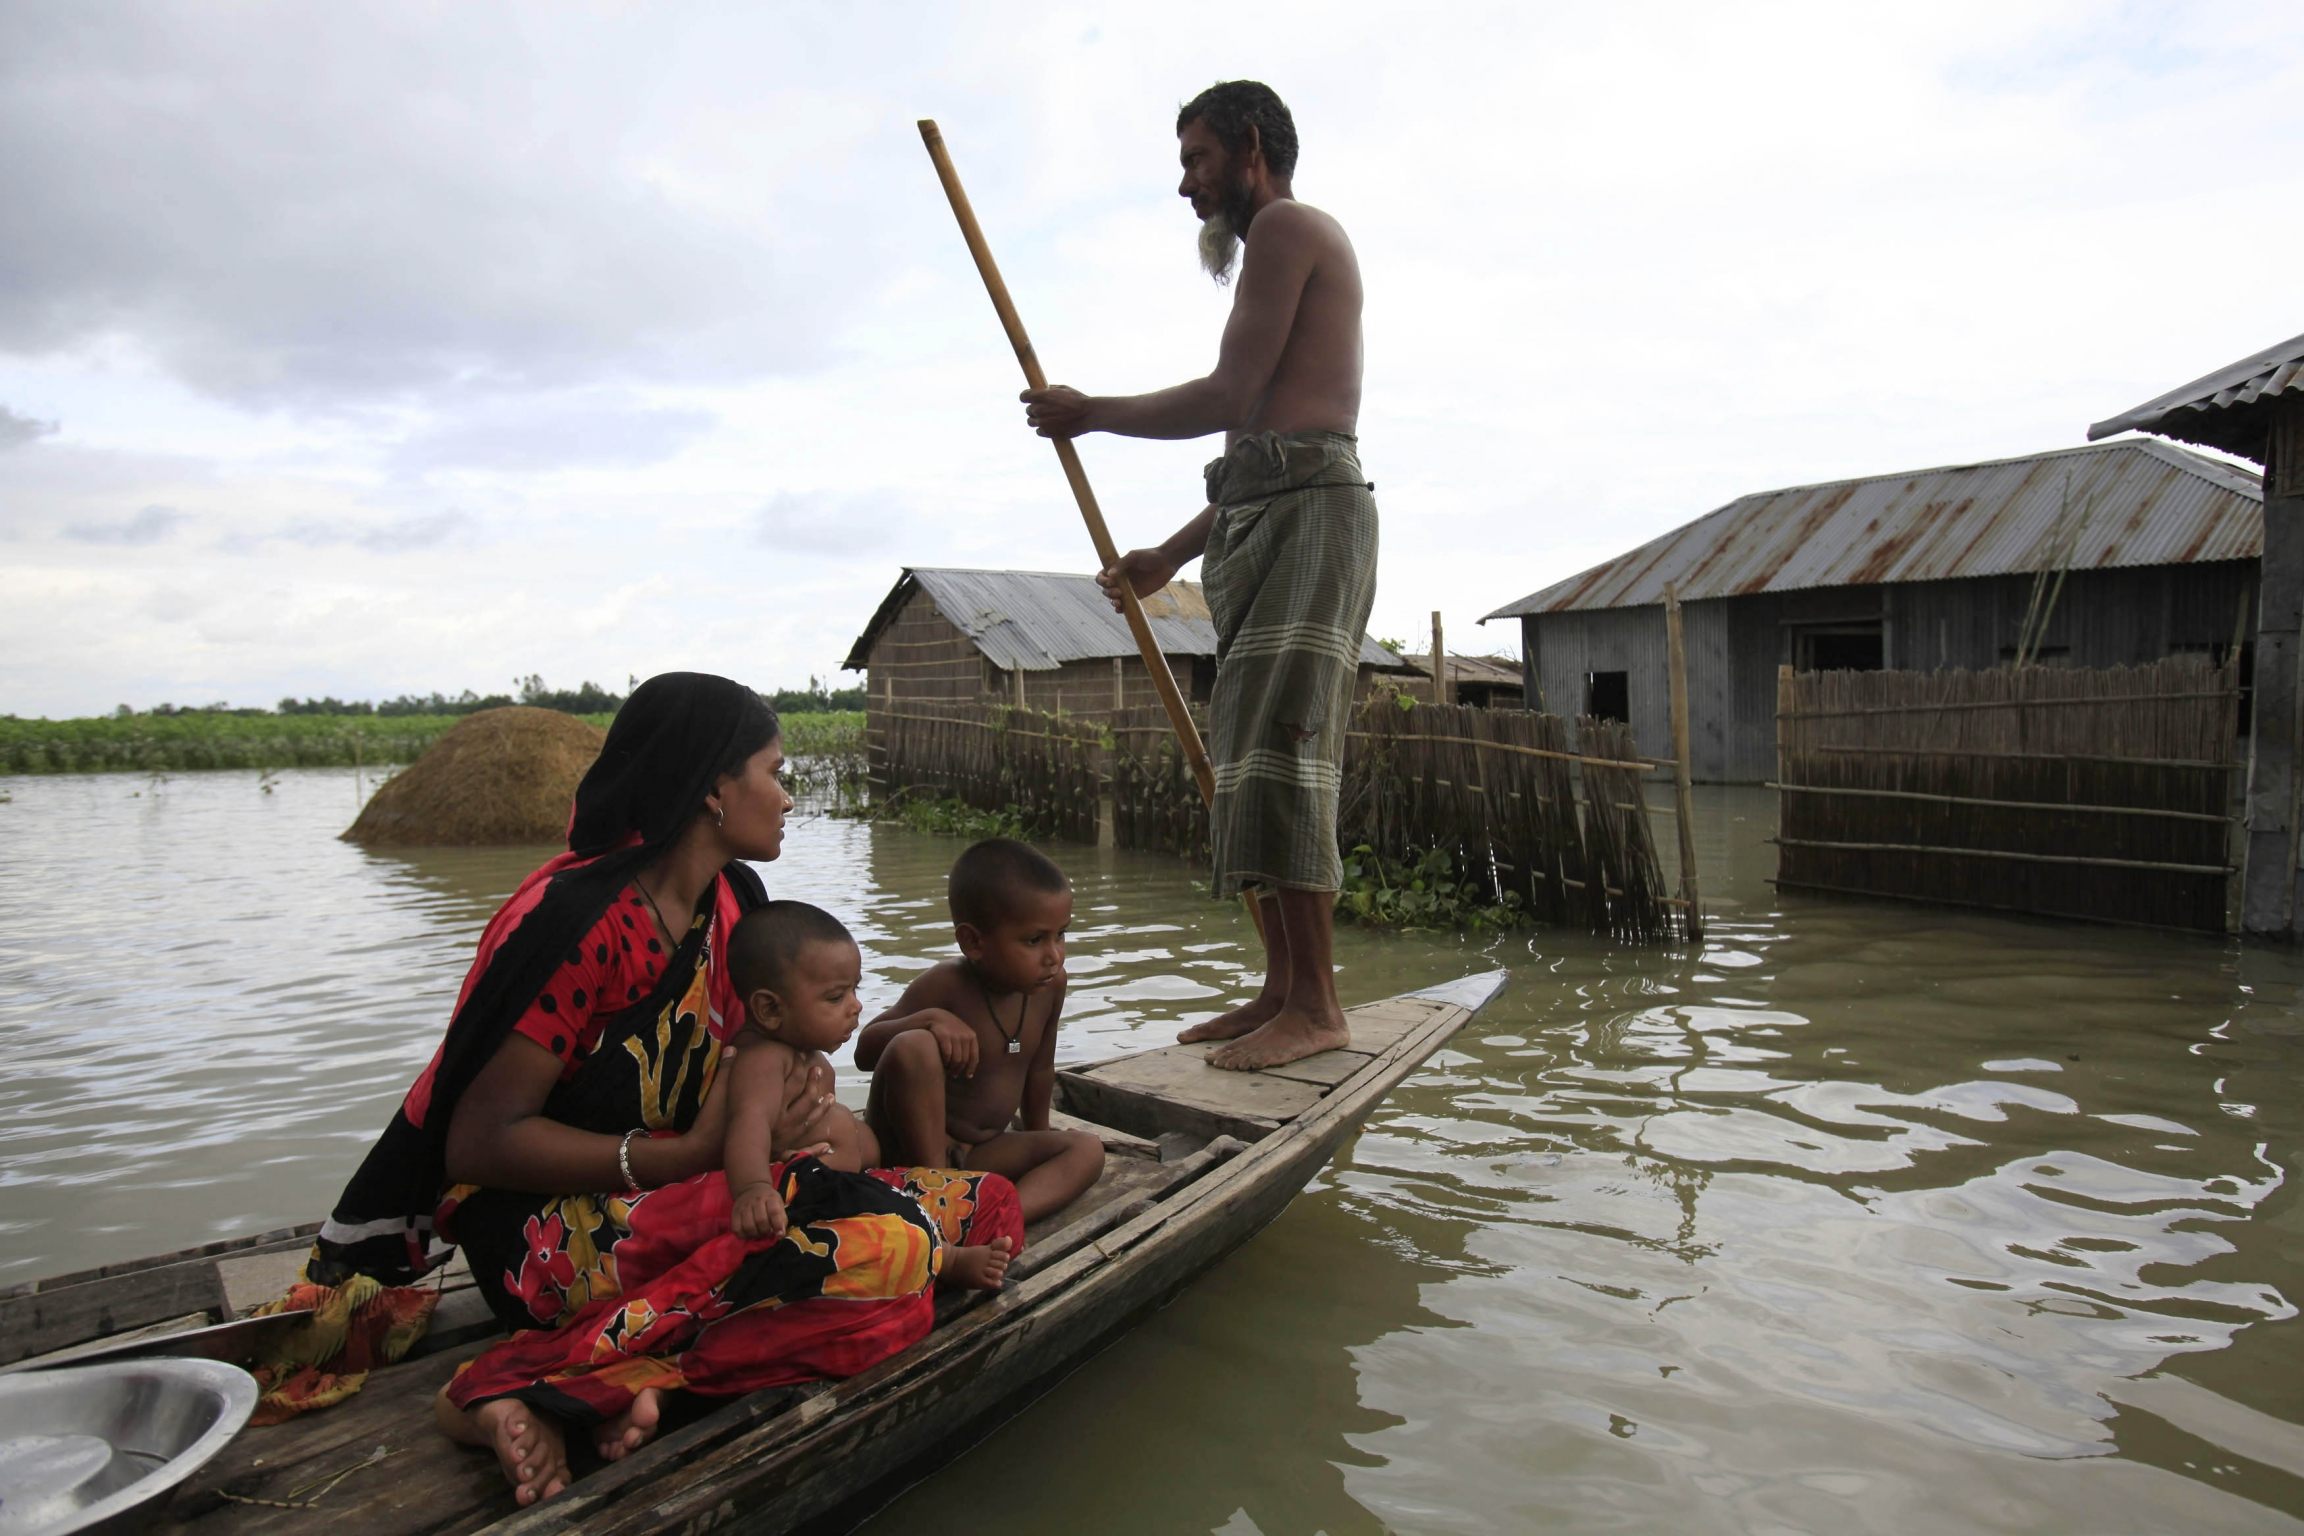 A family sits on a small boat in a flooded village.